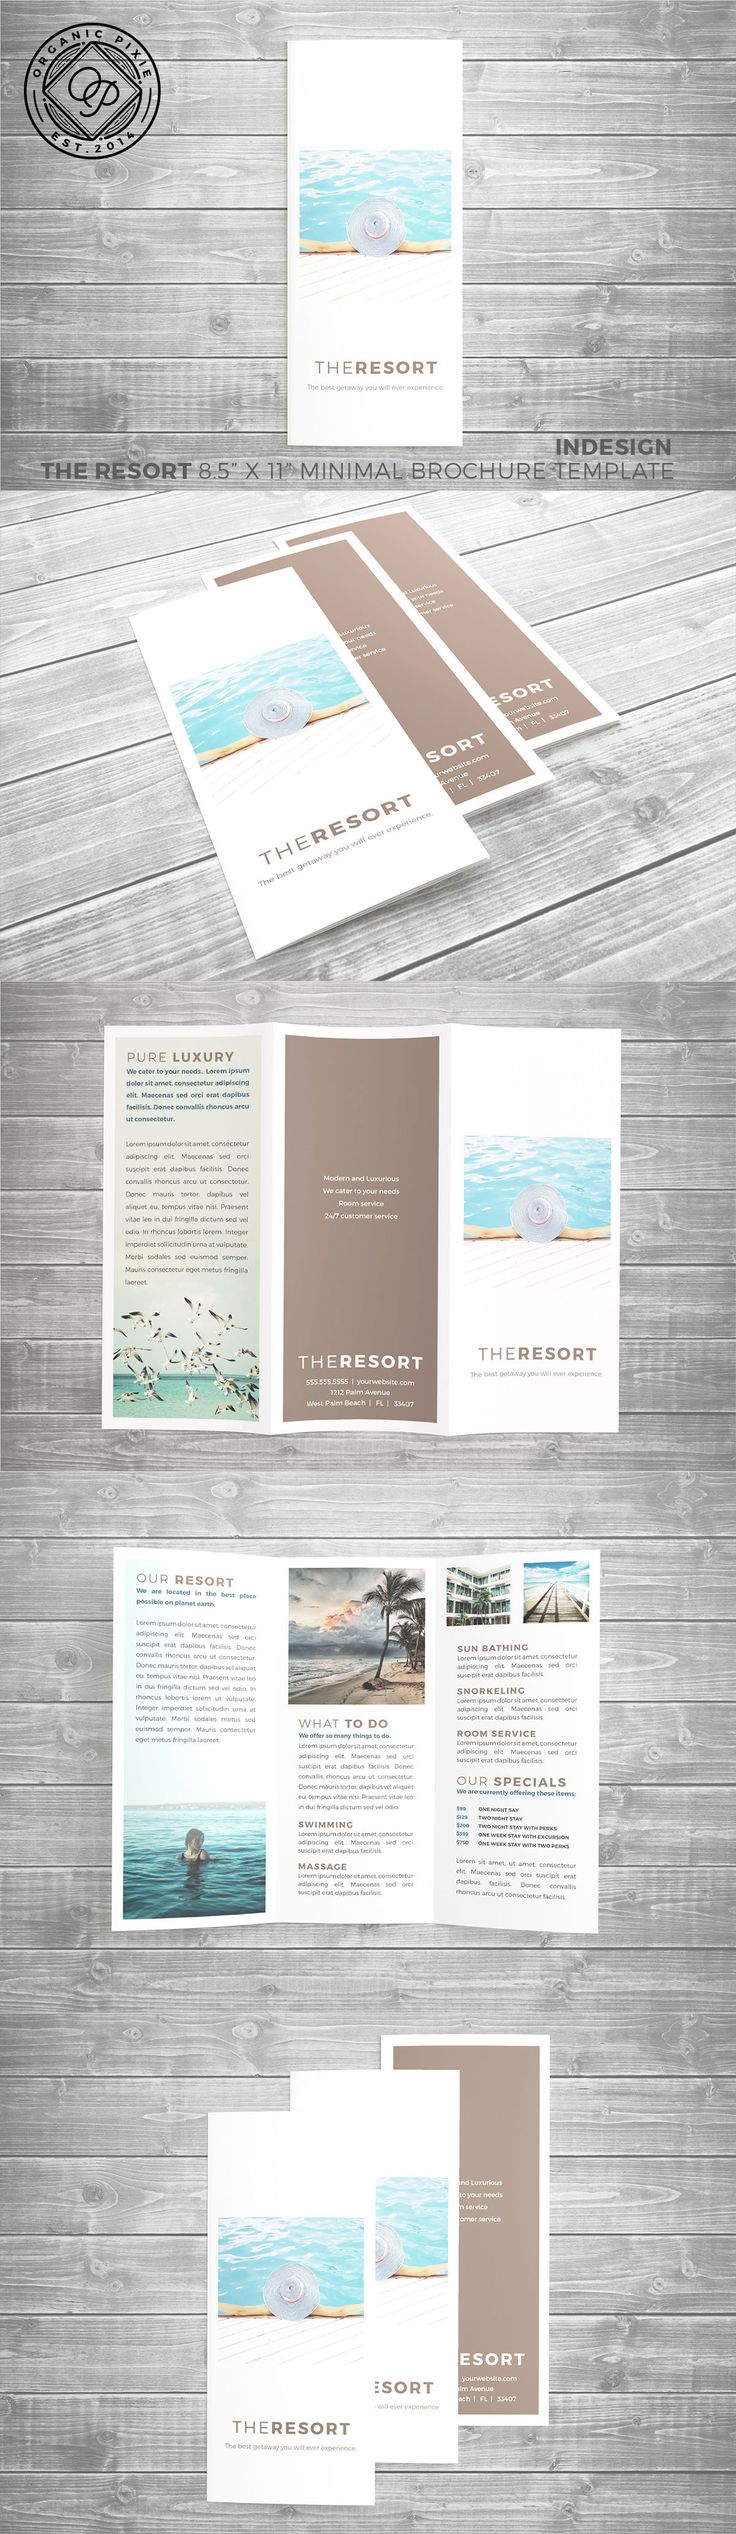 17 best ideas about brochure design on pinterest for Vistaprint brochure template